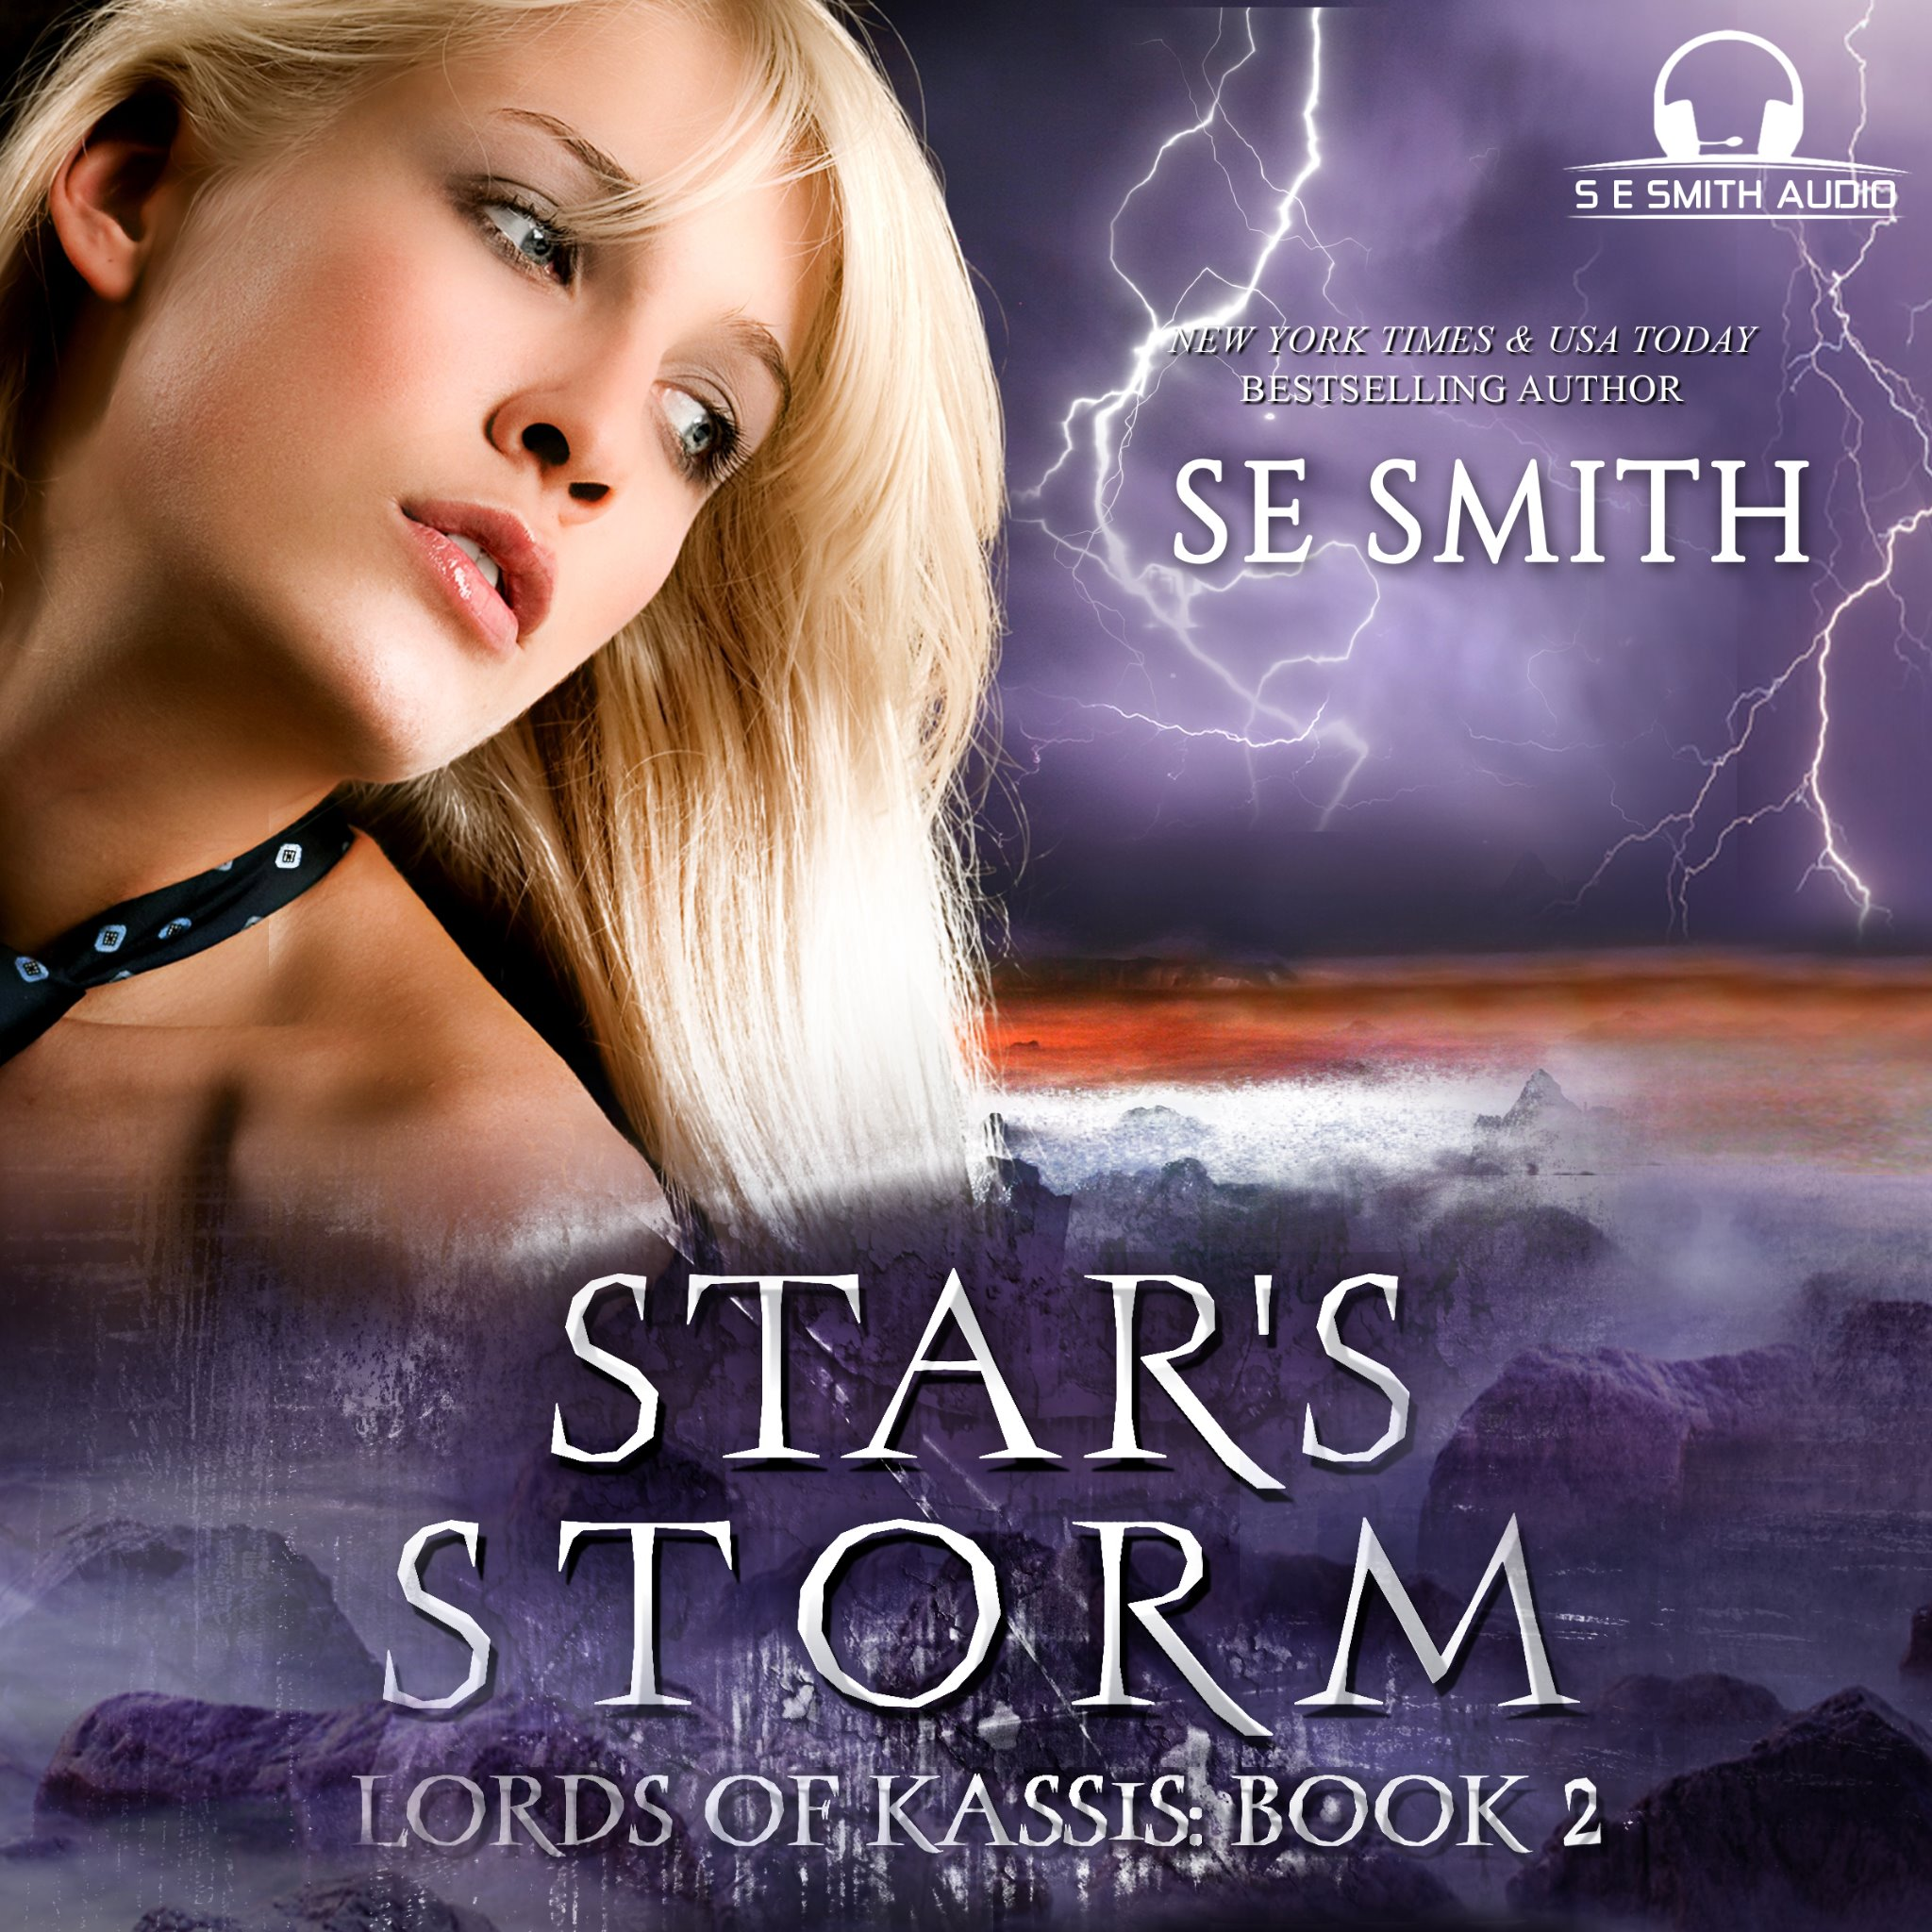 Star's Storm: Lords of Kassis Book 2 (Audiobook CD)